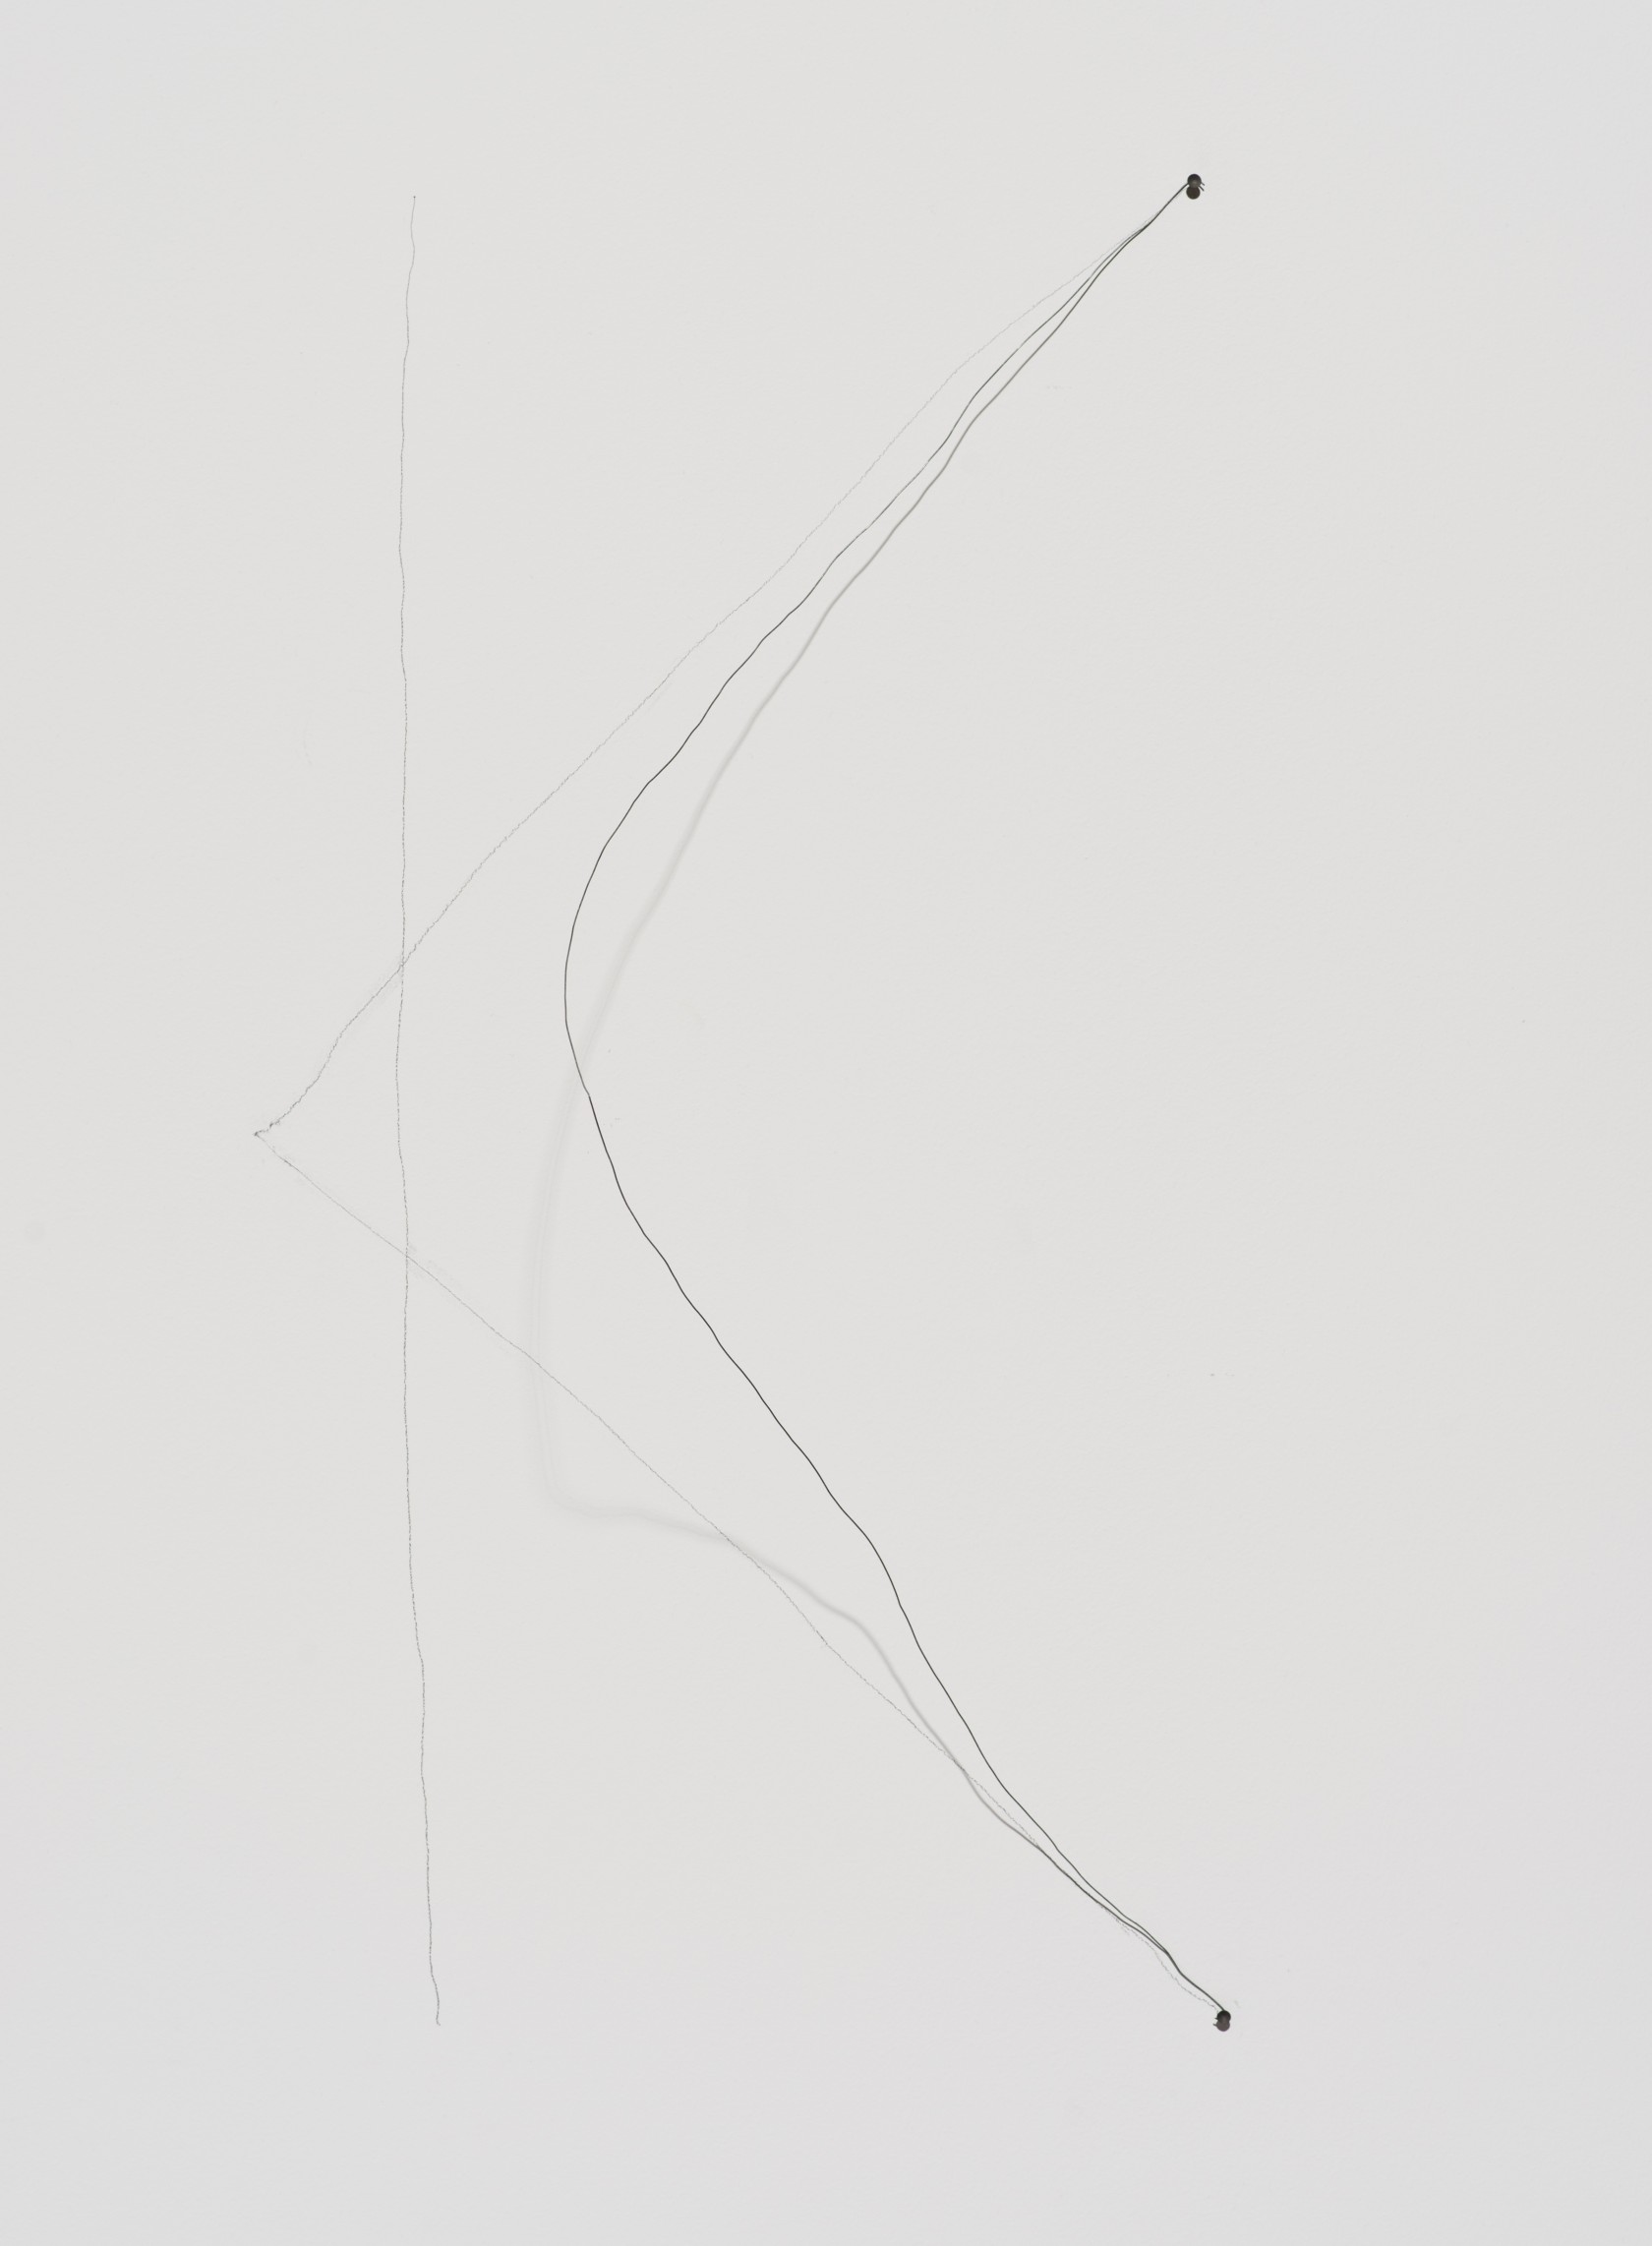 Richard Tuttle, 44th Wire Piece, 1972, wire, template for pencil line, overall 38 1/8 x 19 1/4 x 9 1/4 in. (119.4 x 55.9 x 28.6 cm); wire approx. 58 in. The Museum of Contemporary Art, Los Angeles. Gift of Lannan Foundation.